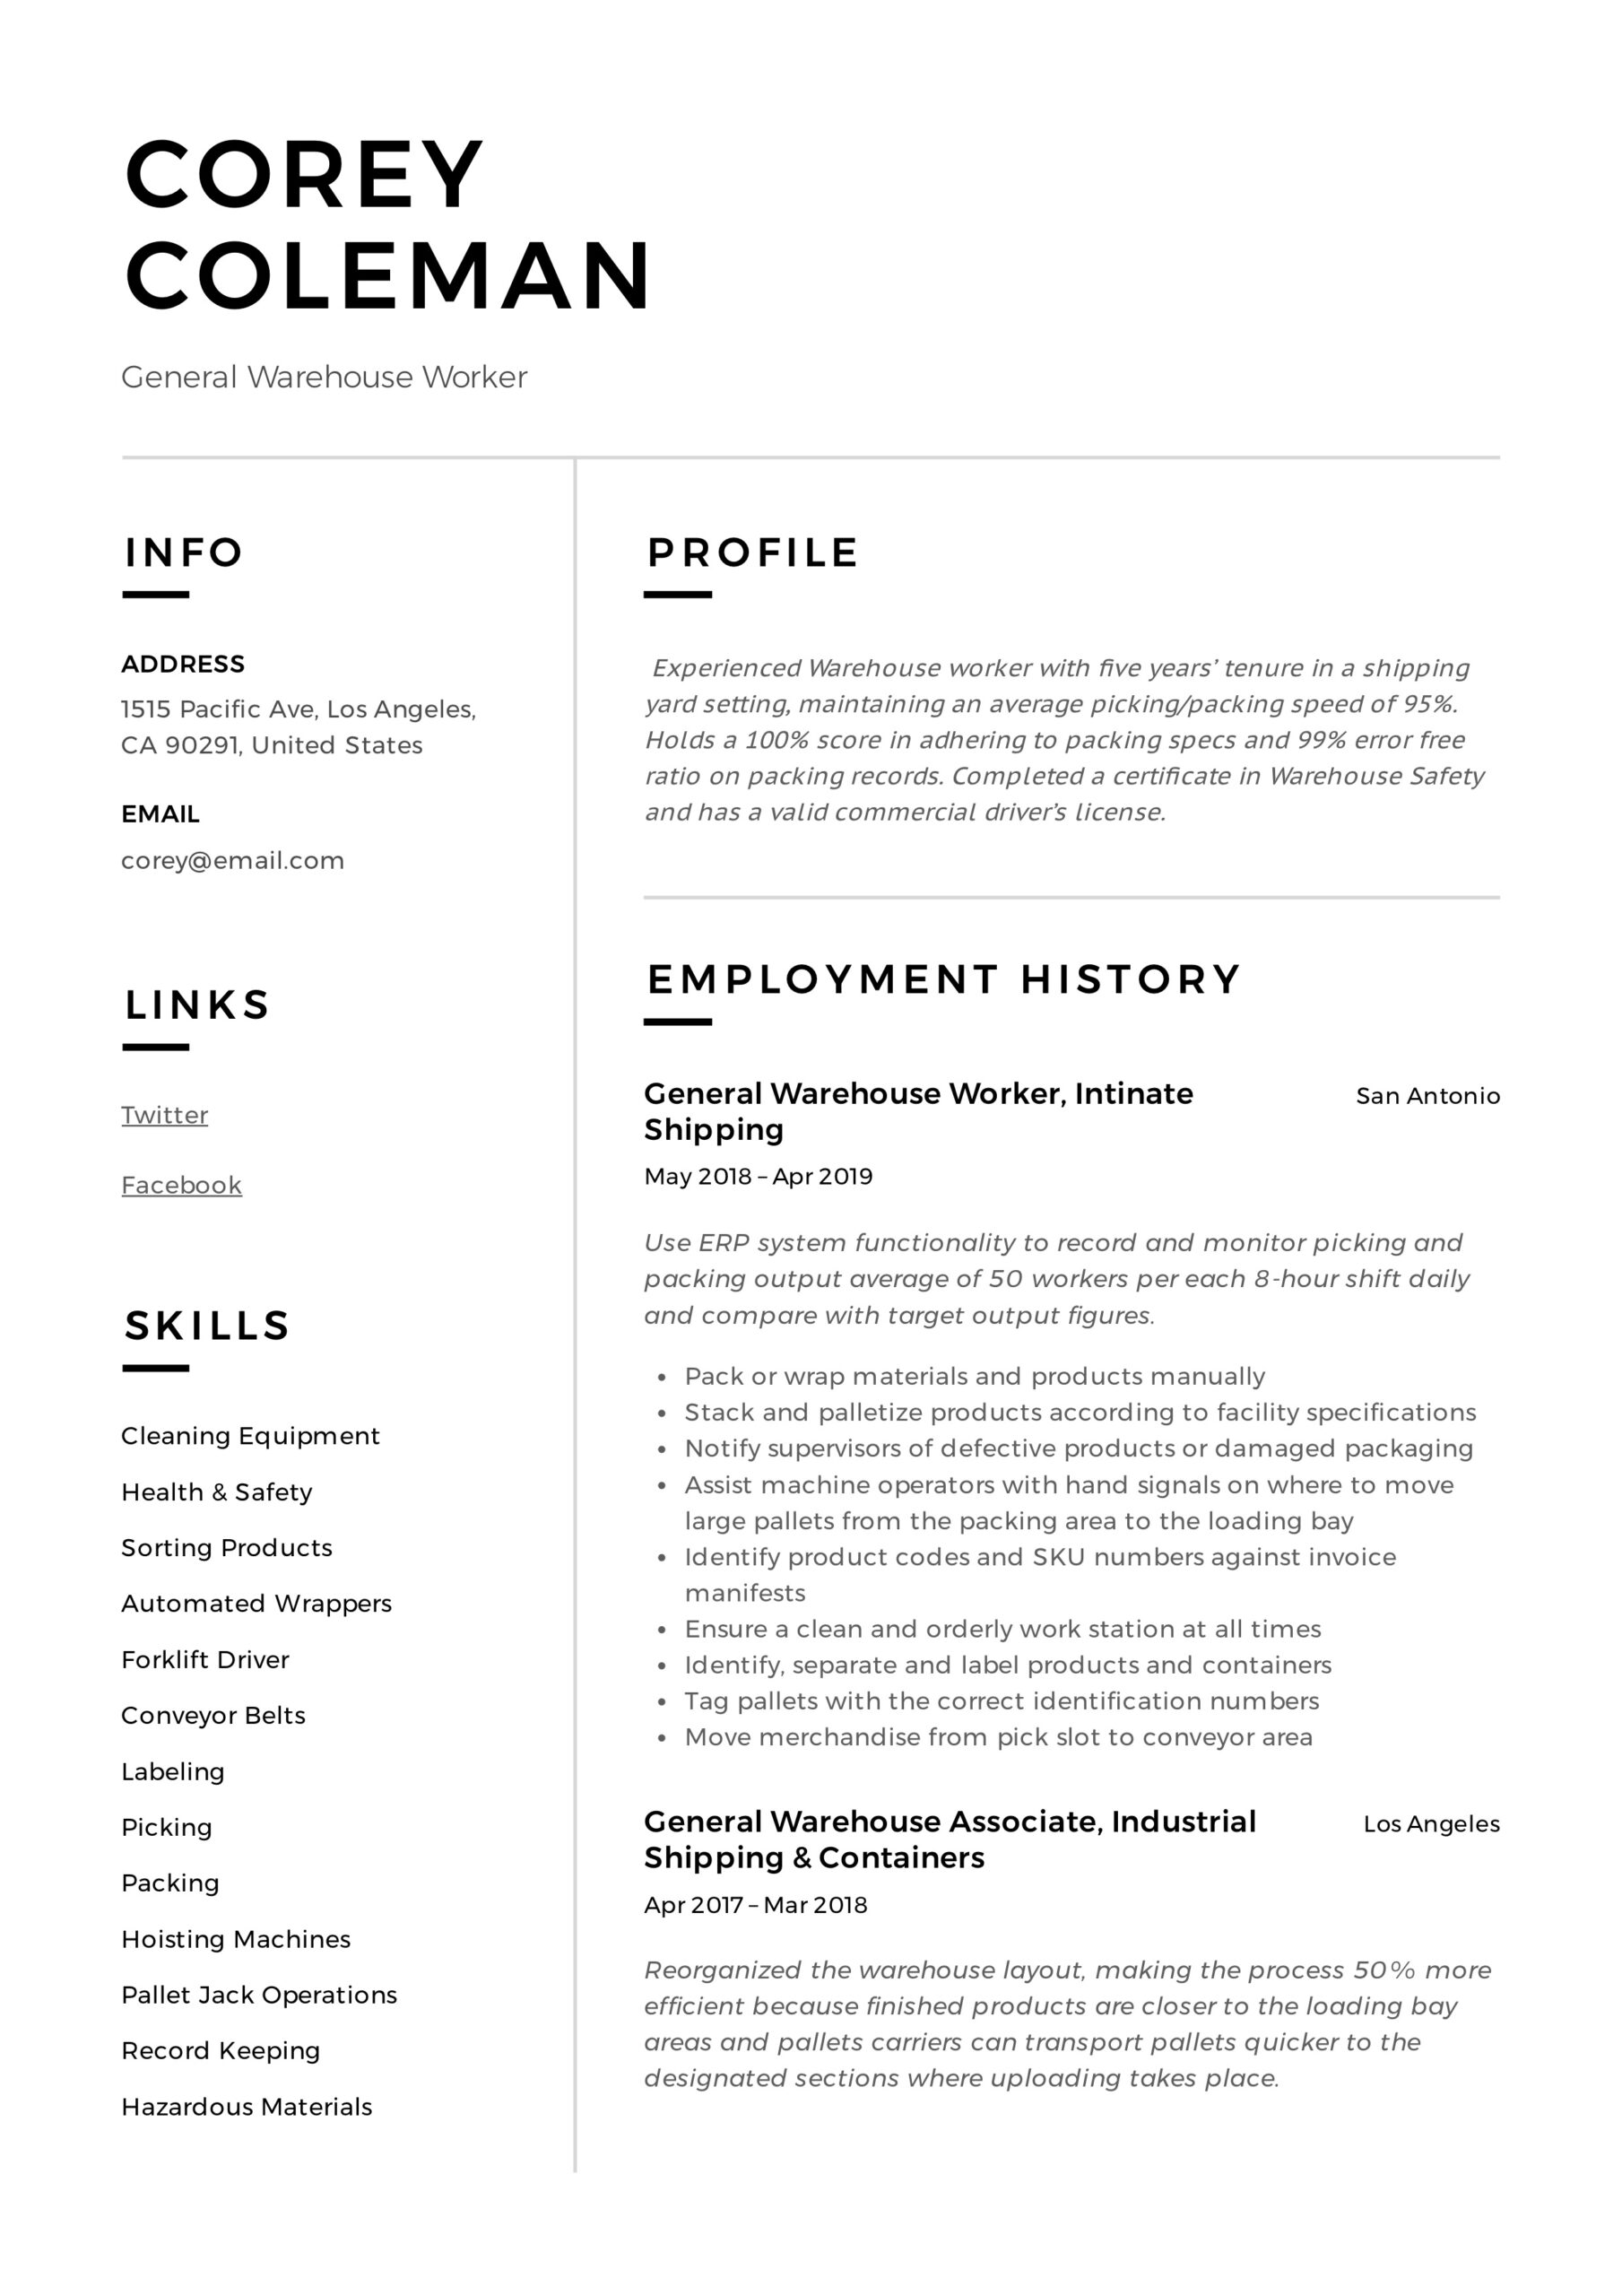 general warehouse worker resume guide templates template corey graphic design examples Resume Warehouse Worker Resume Template